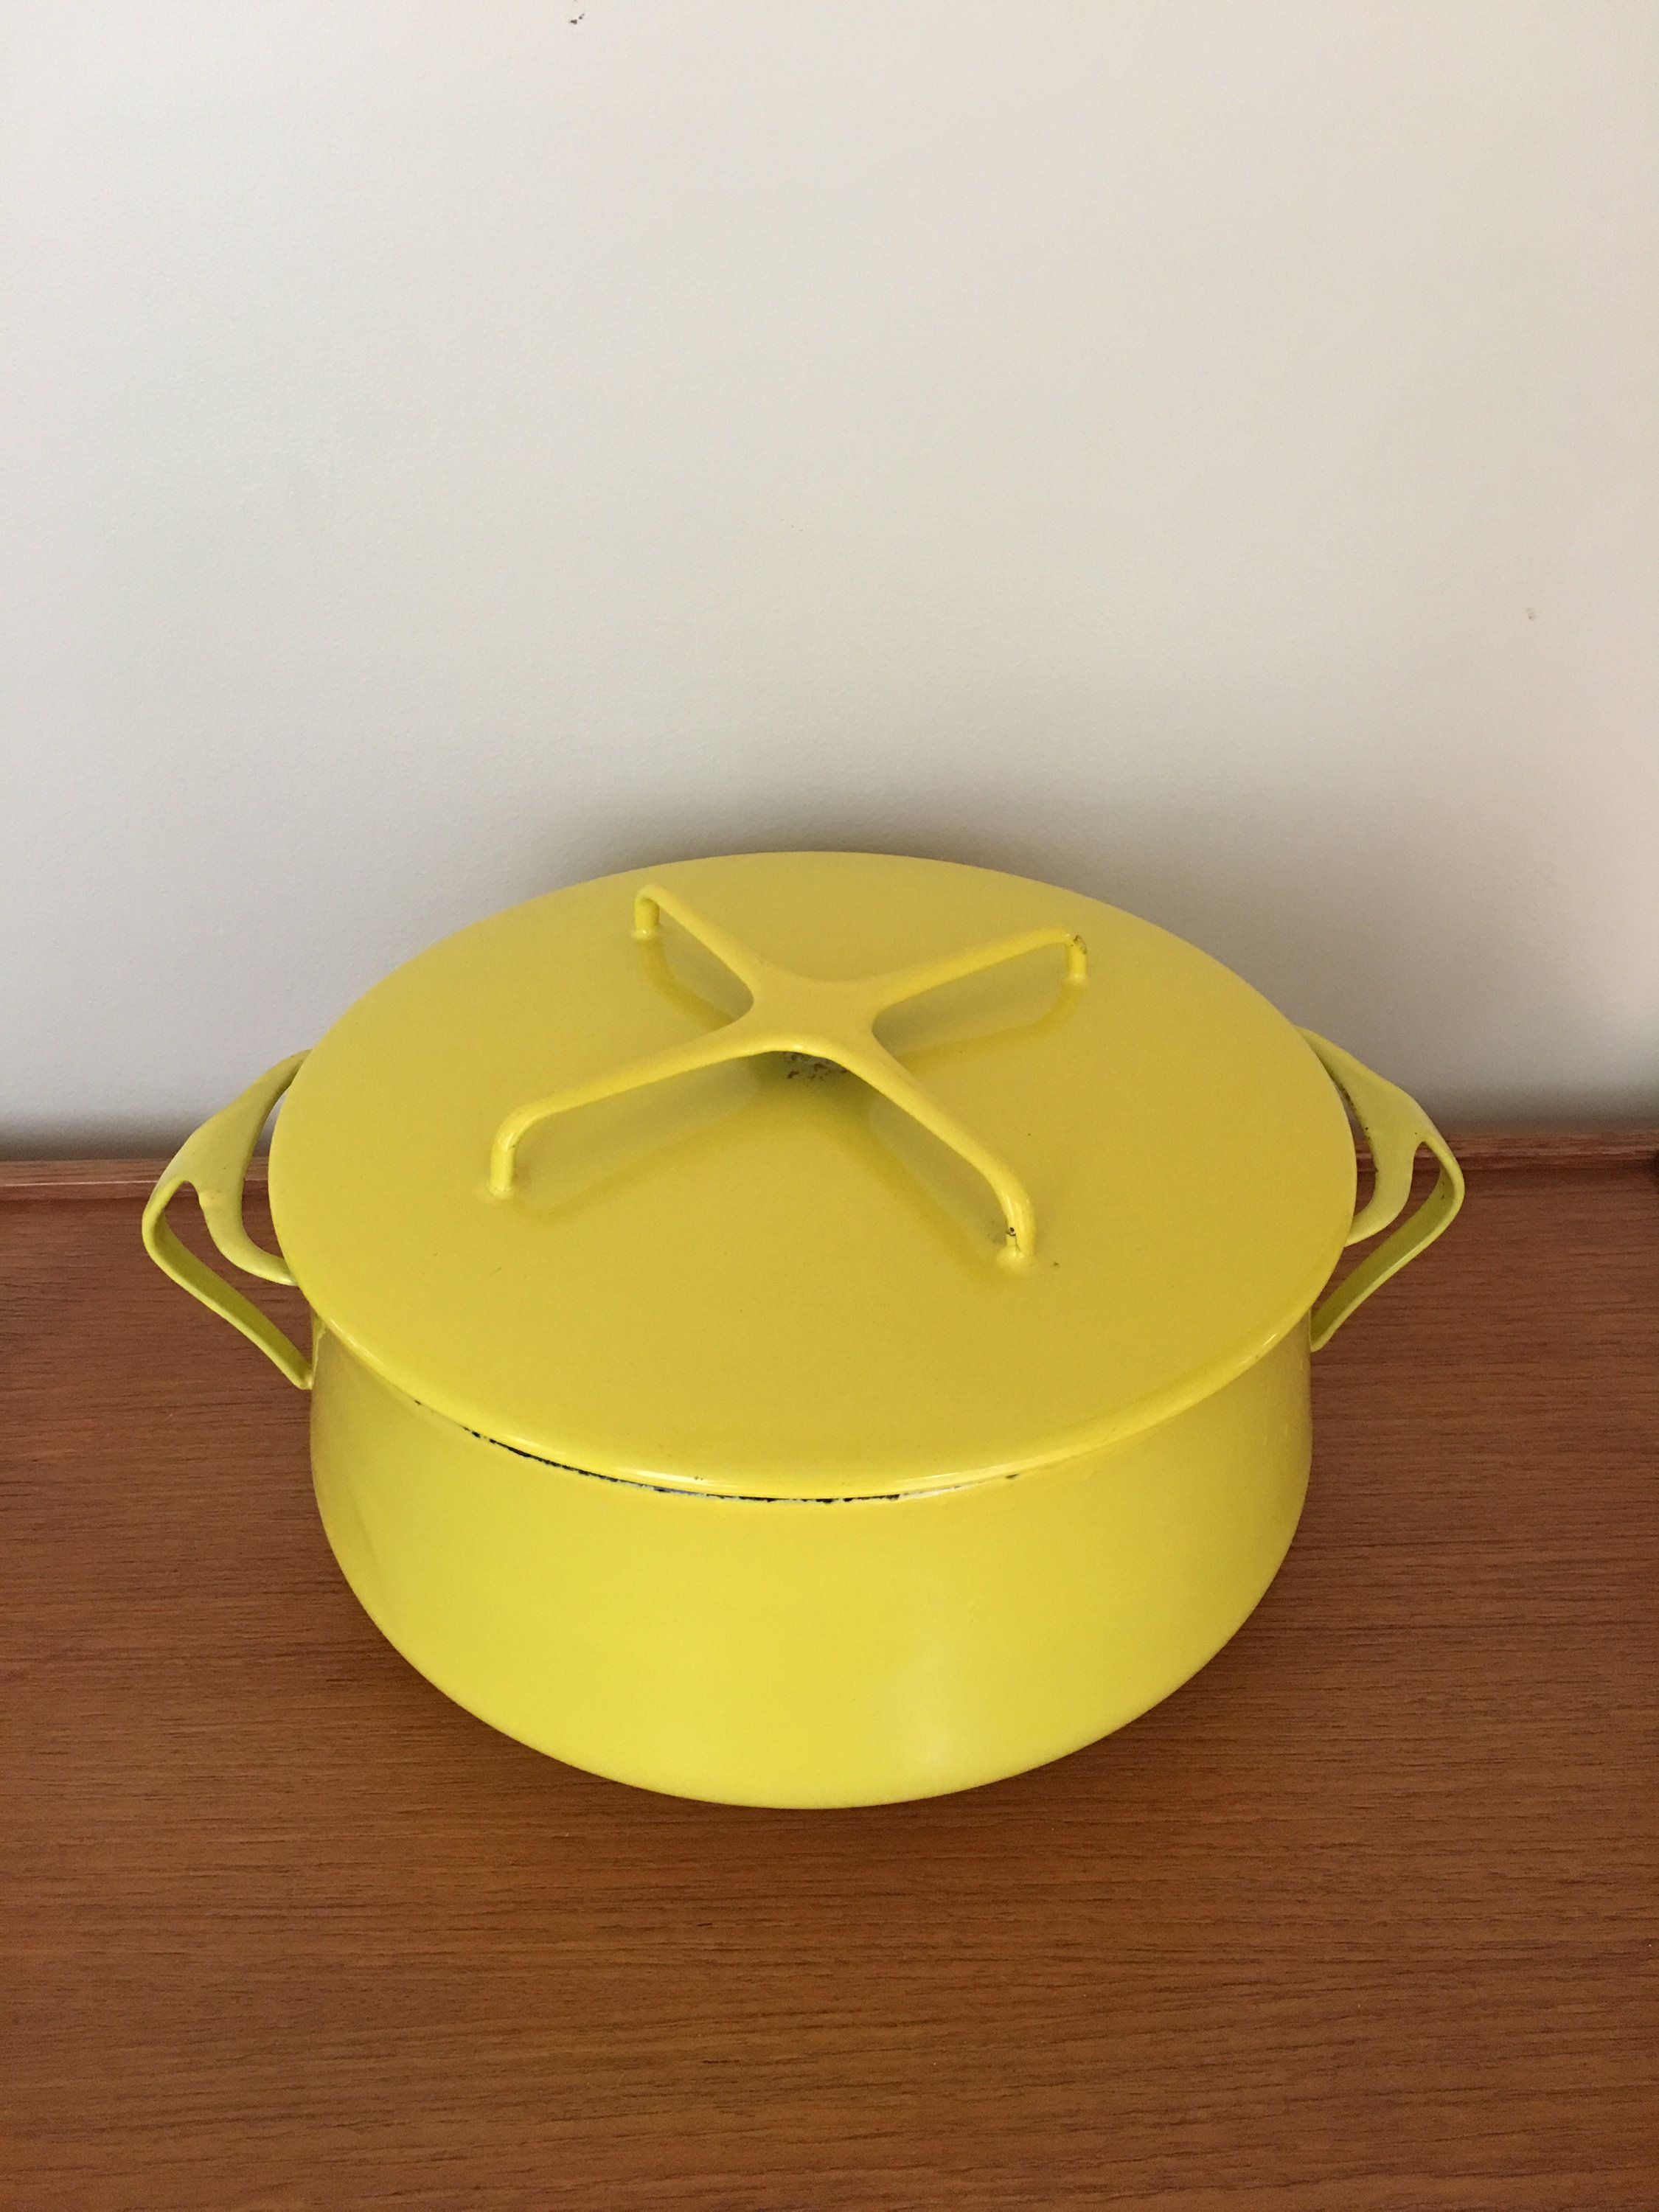 Dansk Kobenstyle 4 Qt Dutch Oven Yellow Enamel Pan With Lid Jens Quistgaard Dansk Designs Denmark Four Duck Logo I Mid Century Pot Enamel Pan Yellow Enamel